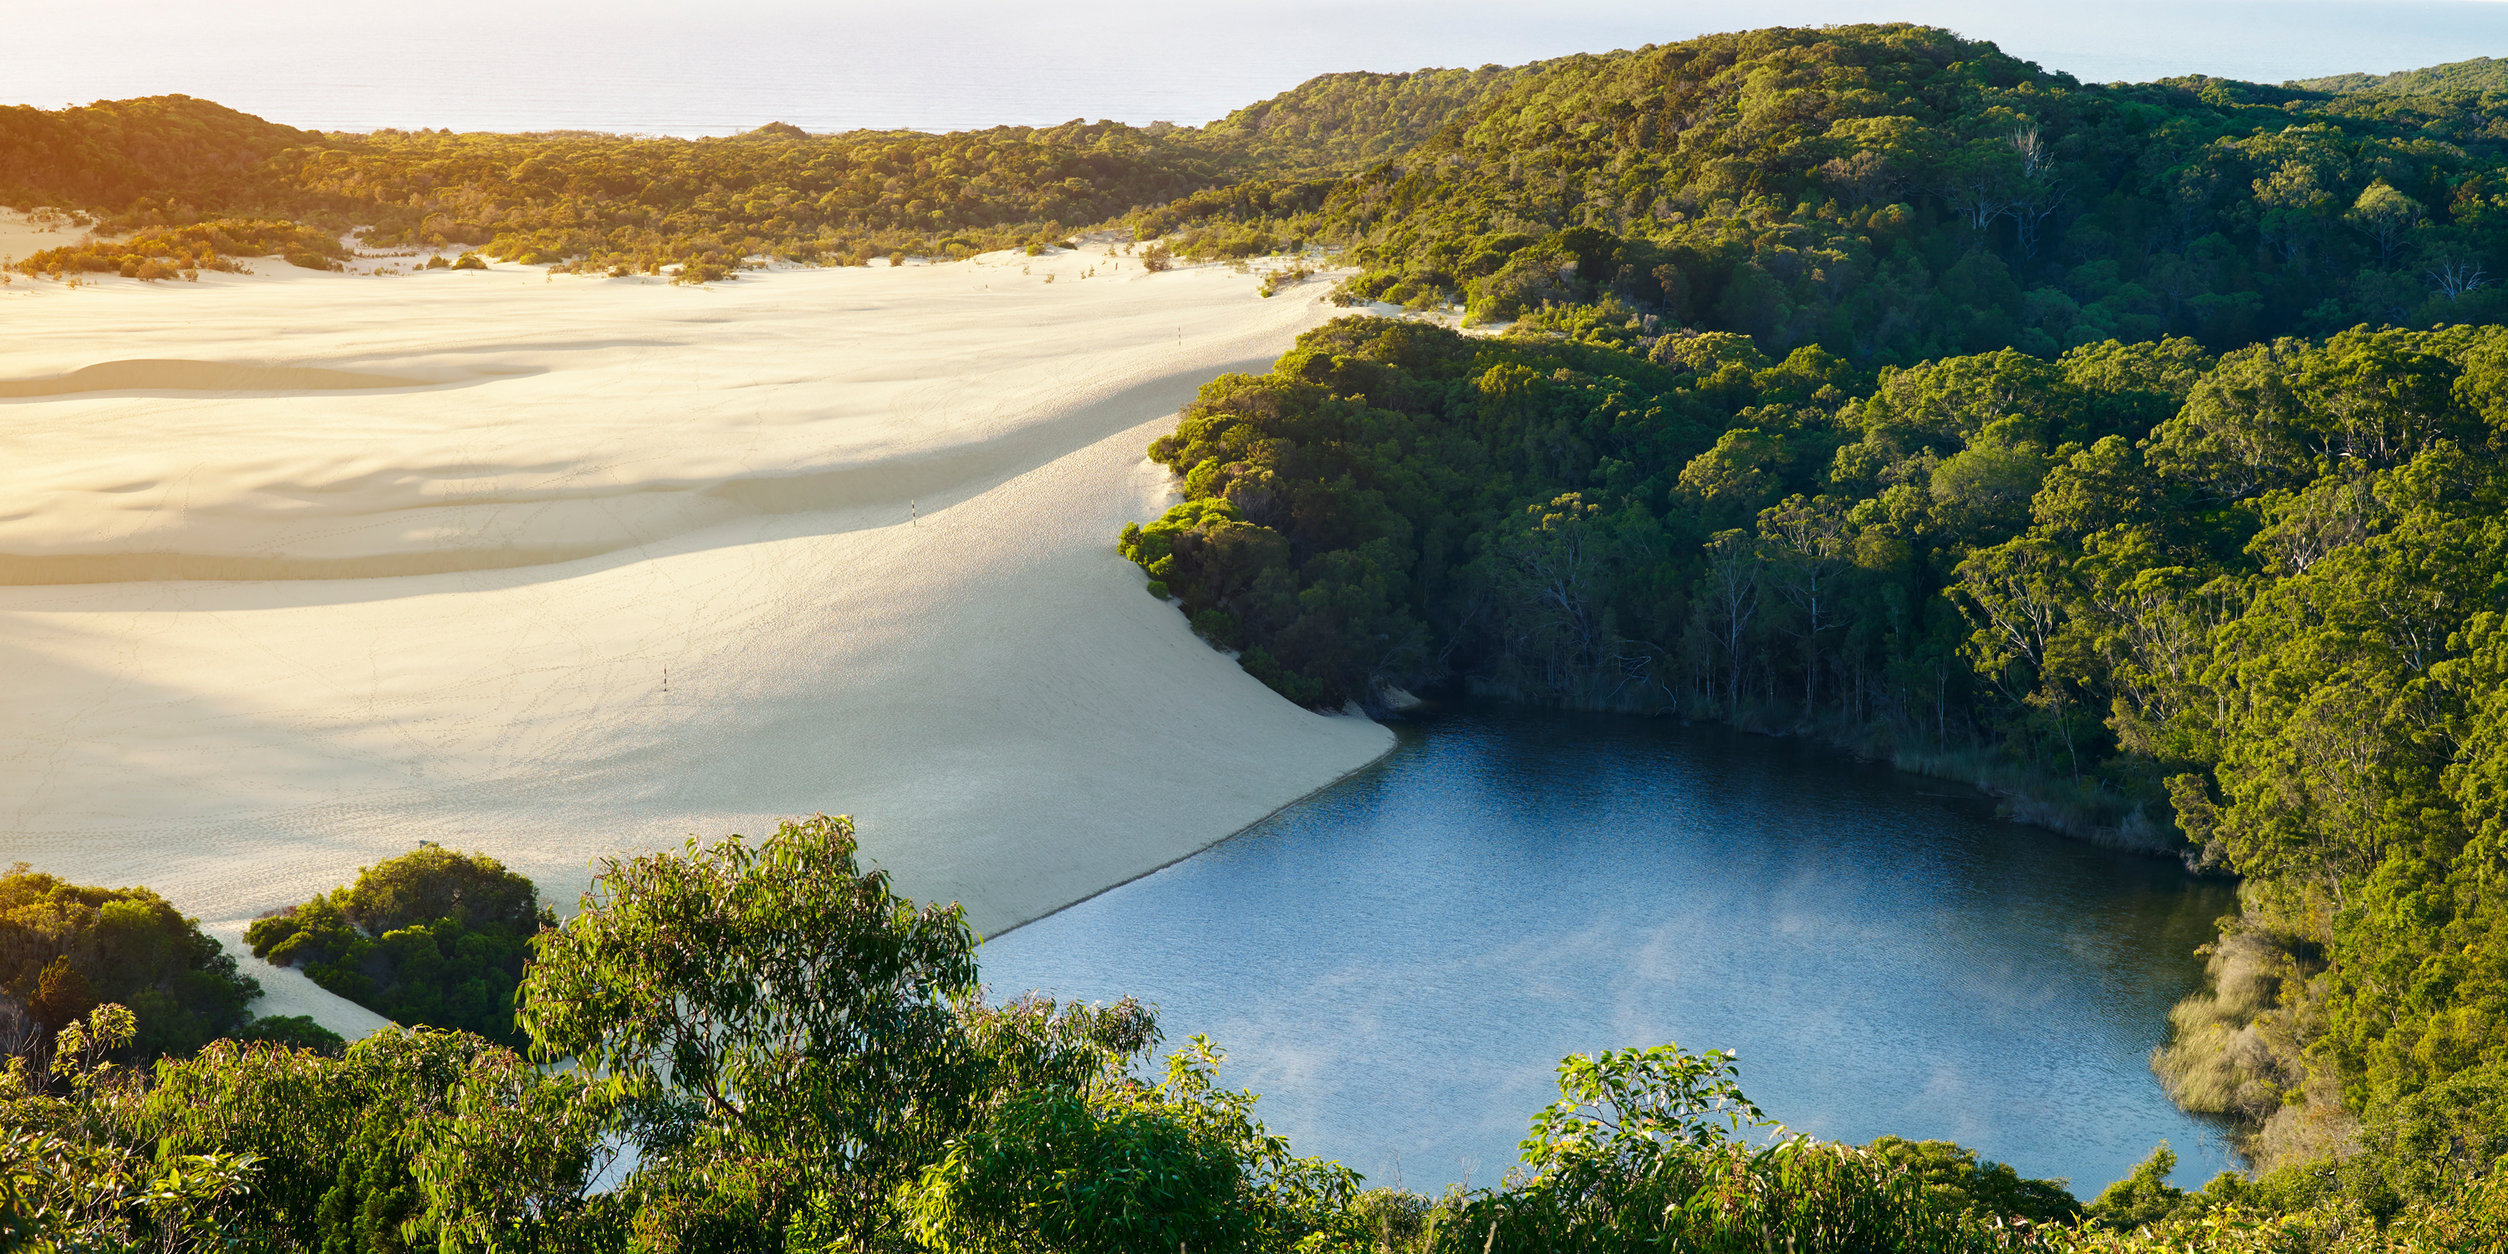 Wild-Swimming-Australia©Swimming-Hole_Queensland_Fraser-Island_lake-Wabby_074_Andy-lewis_PrintCrop.jpg